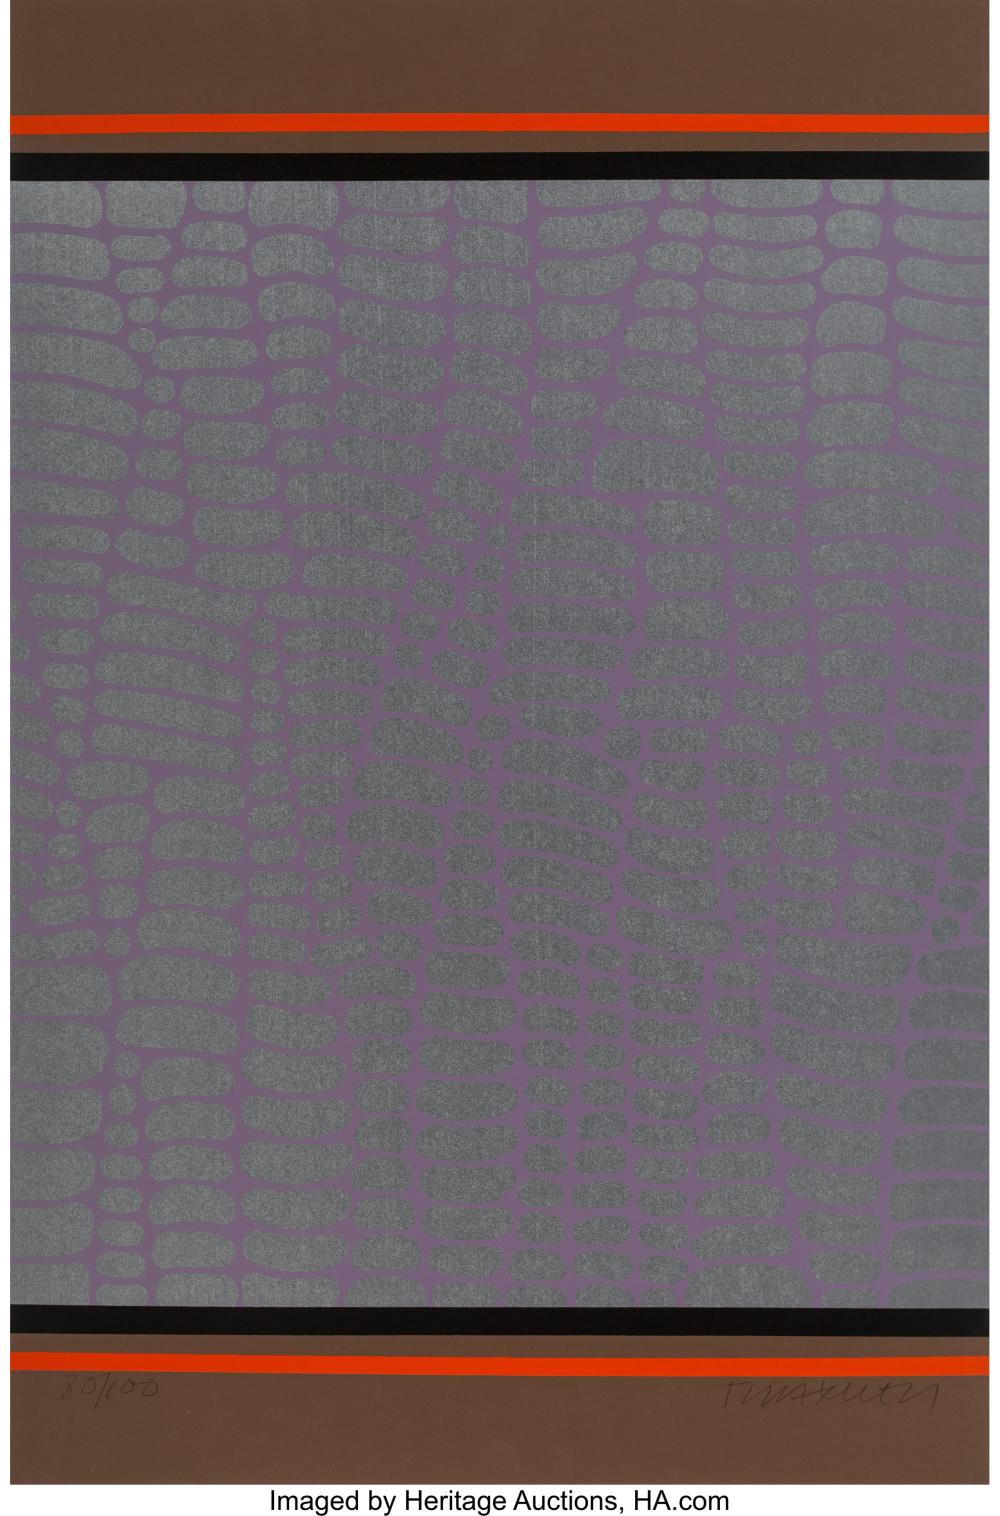 Lot 21339: Paul Maxwell (b.1925) Untitled (Purple and Brown Web), 1978 Screenprint in color